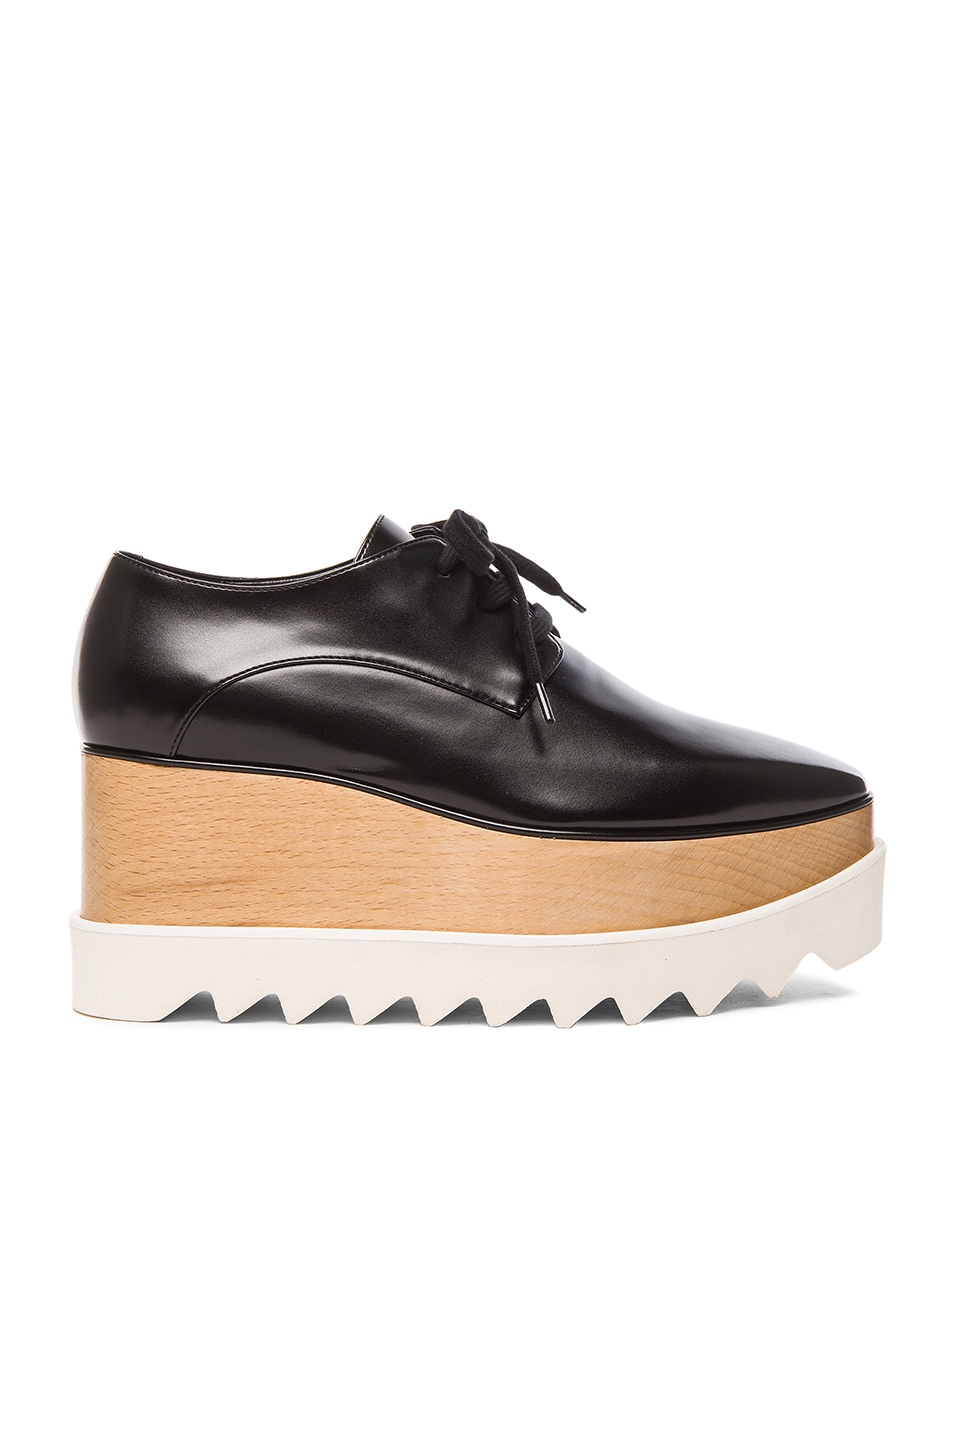 Image 1 of Stella McCartney Elyse Platform Shoes in Black